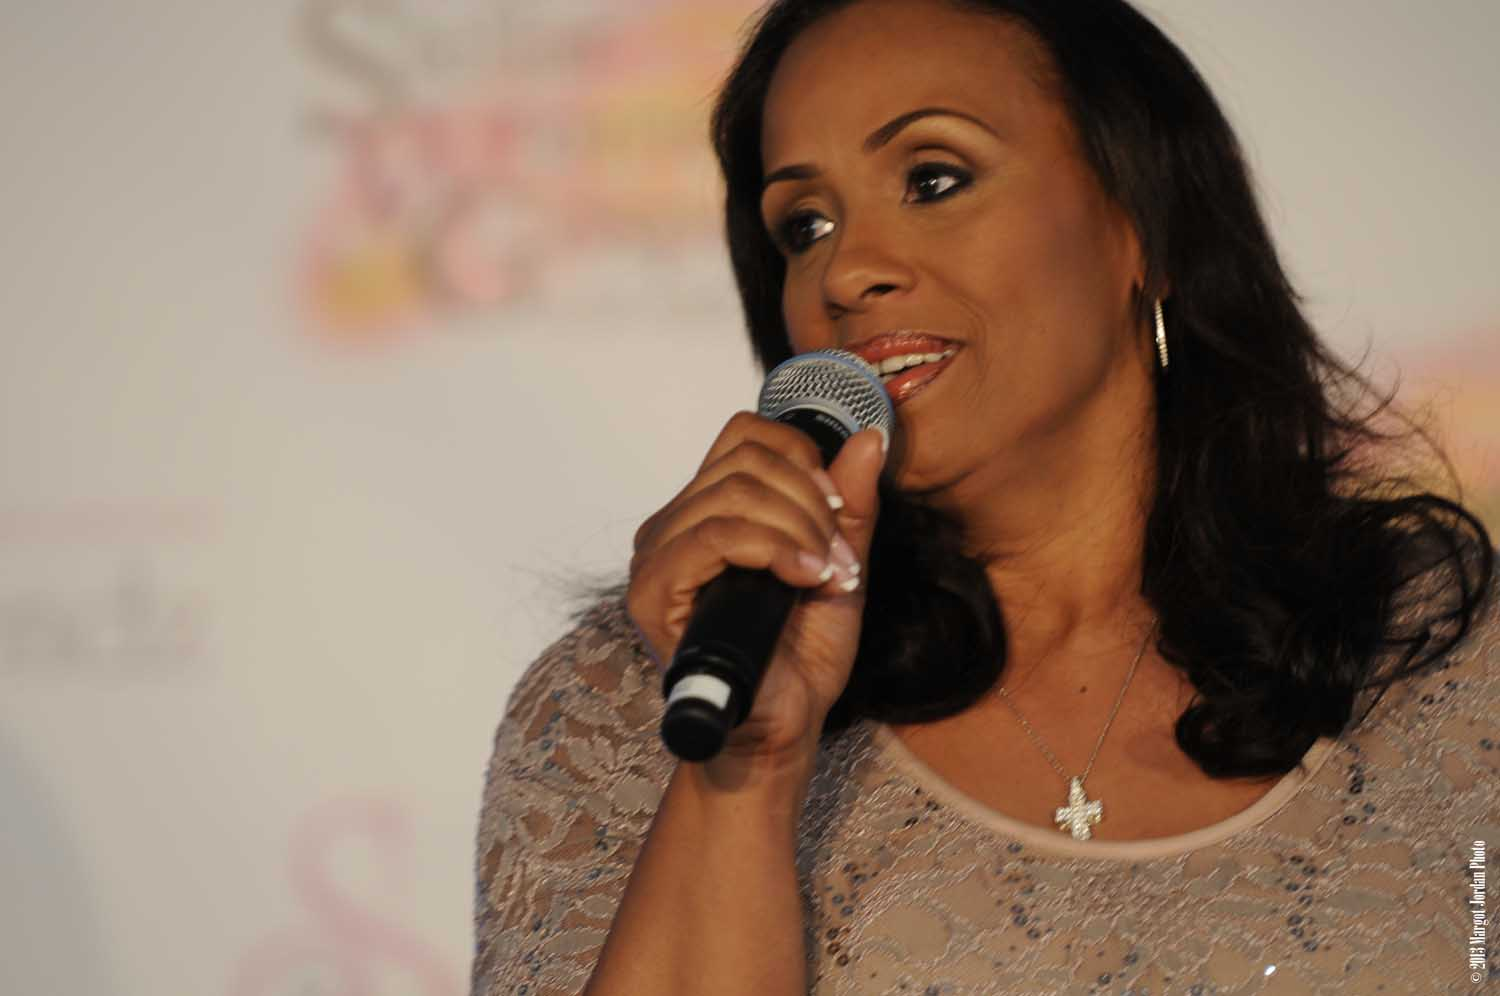 Toya Beasley, President and CEO of Sista Friendz Organization Giving Welcome 